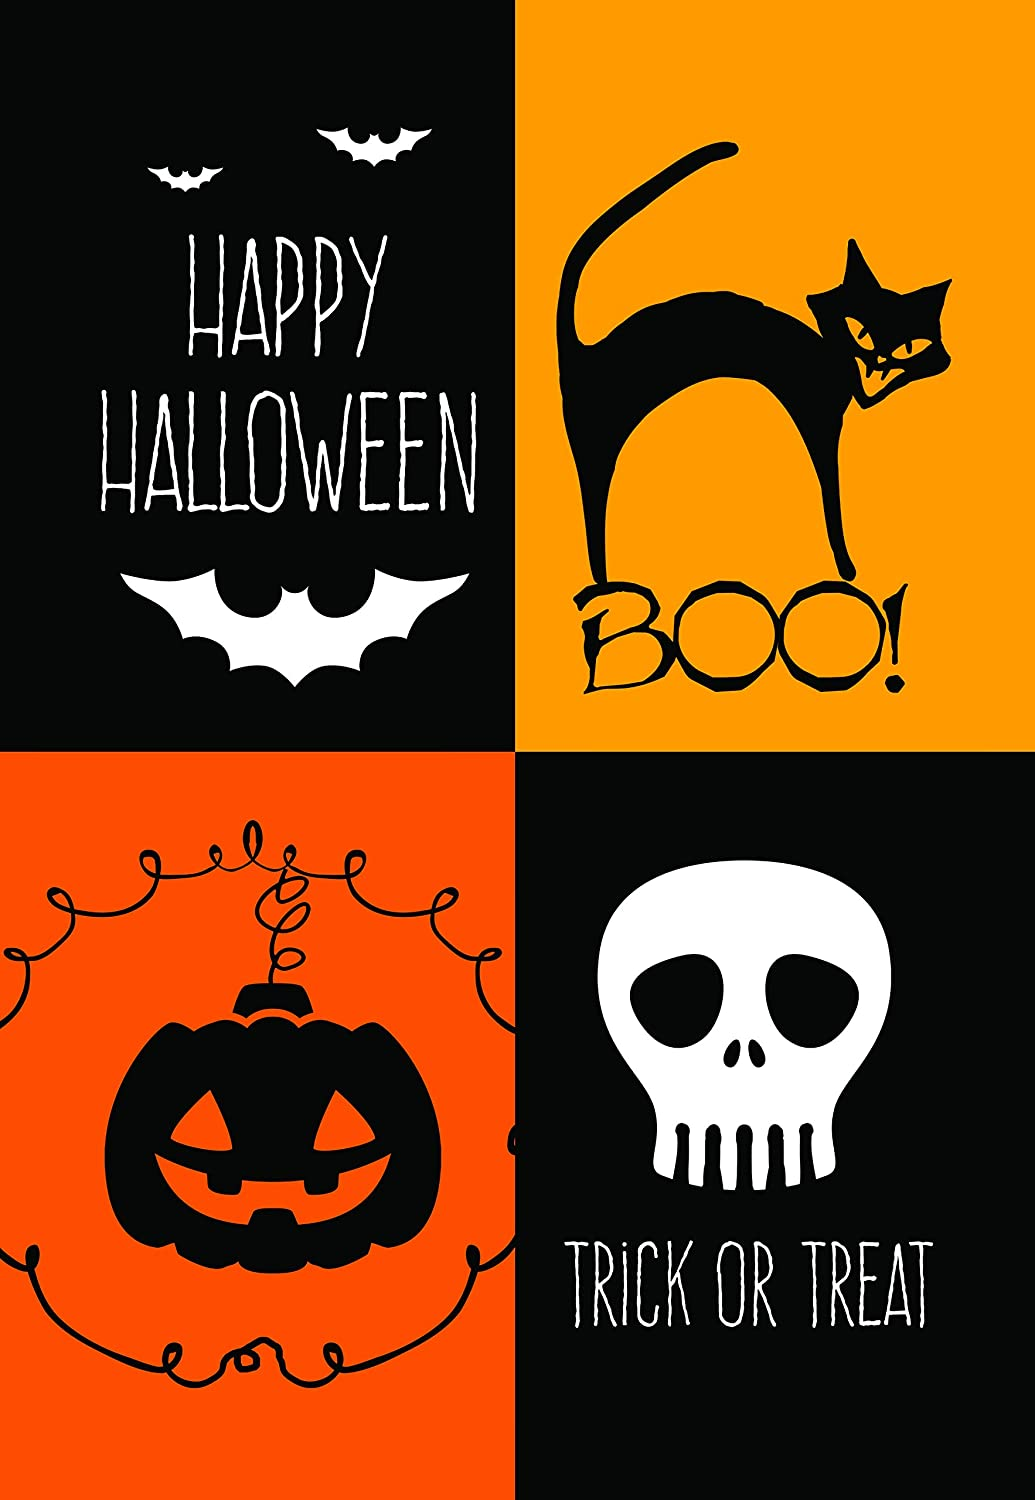 Lantern Hill Four Square Boo Halloween Garden Flag; Halloween Decoration; 12.5 x 18 inches; Double Sided Seasonal Decorative Banner